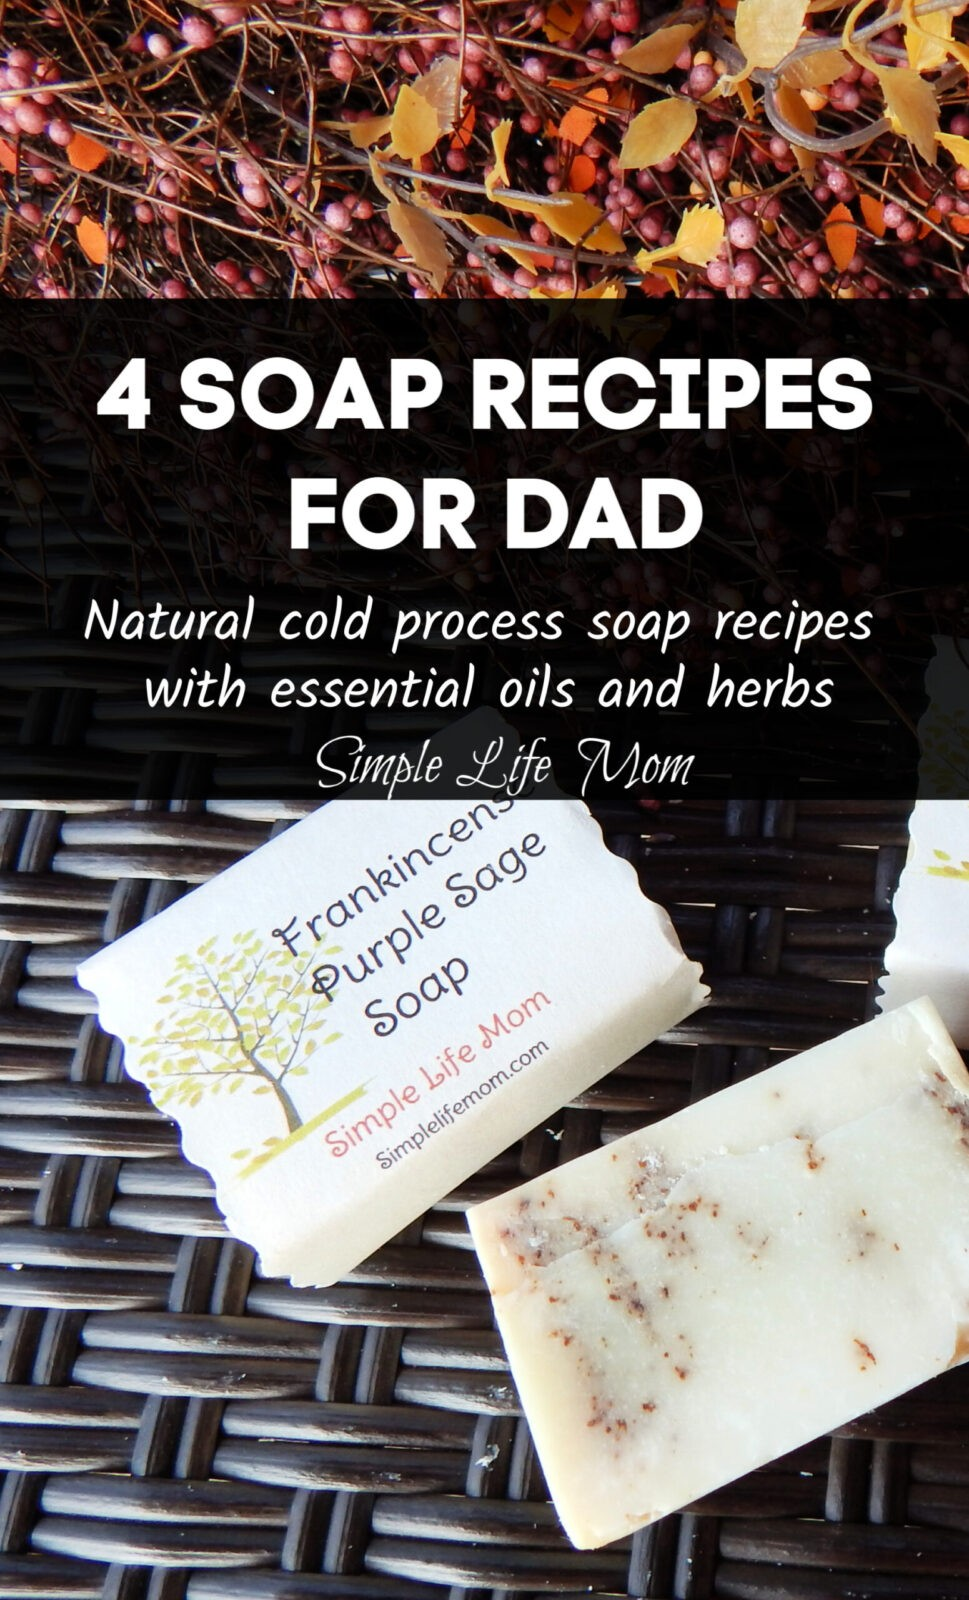 4 Soap Recipes for Dad – Happy Father's Day